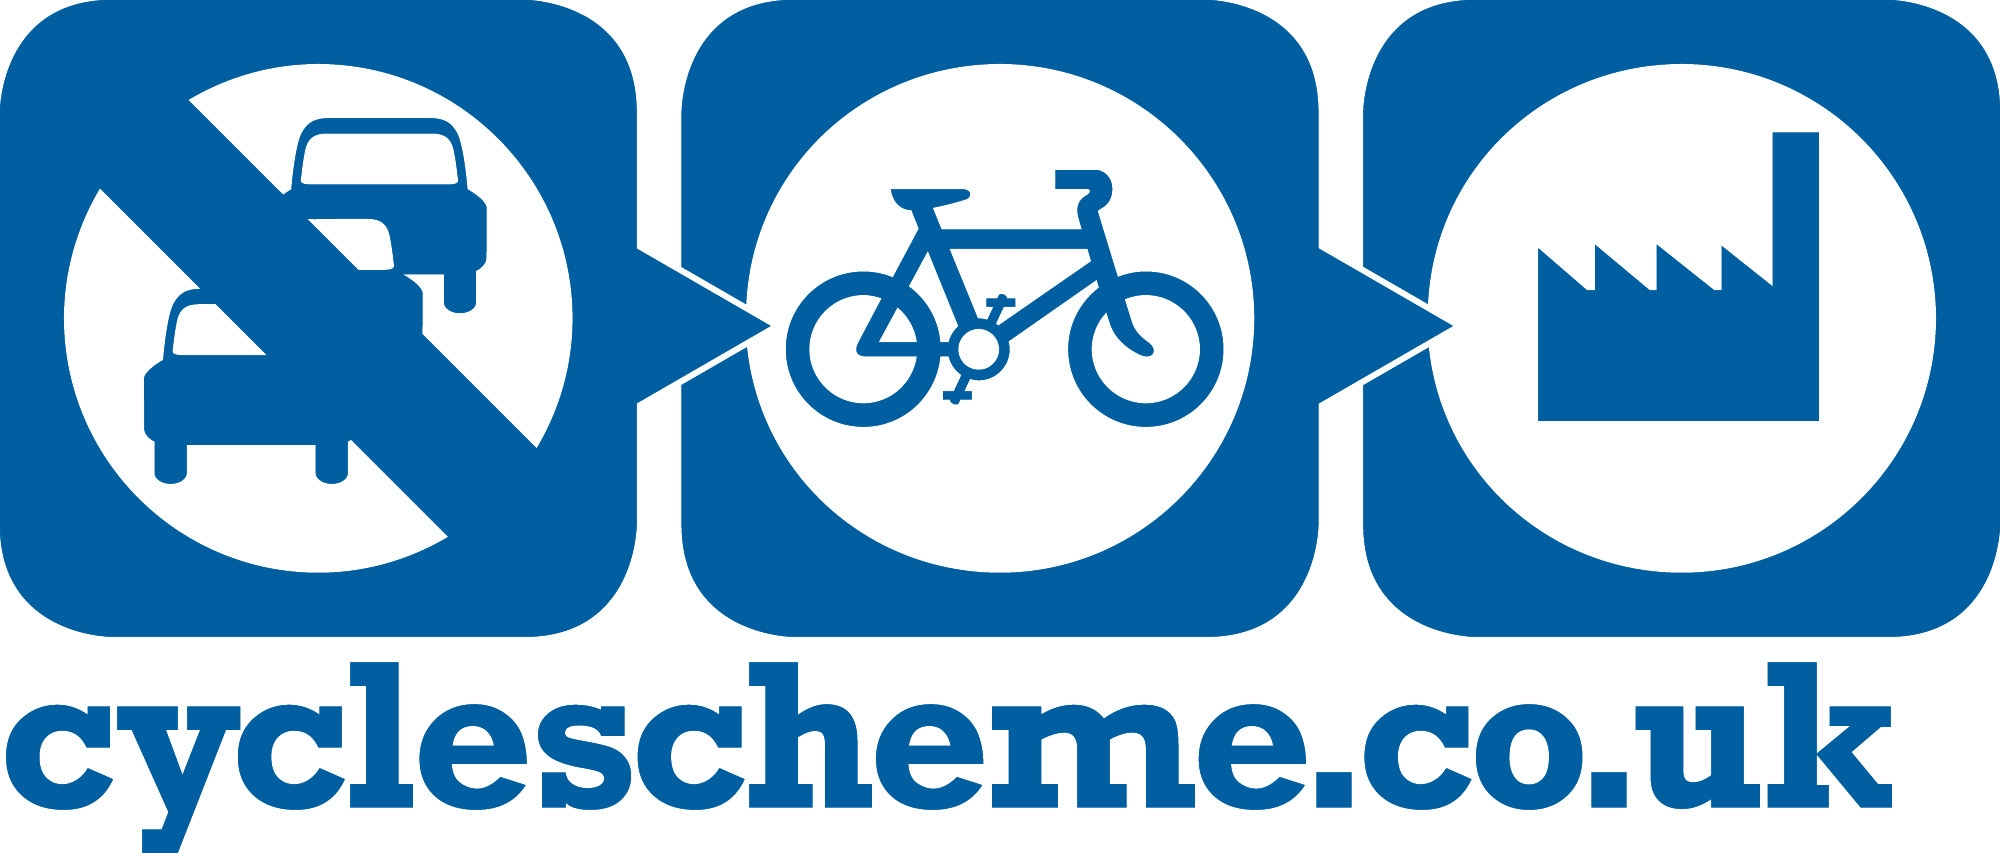 Cyclescheme_Logo_-_Colour[1].JPG